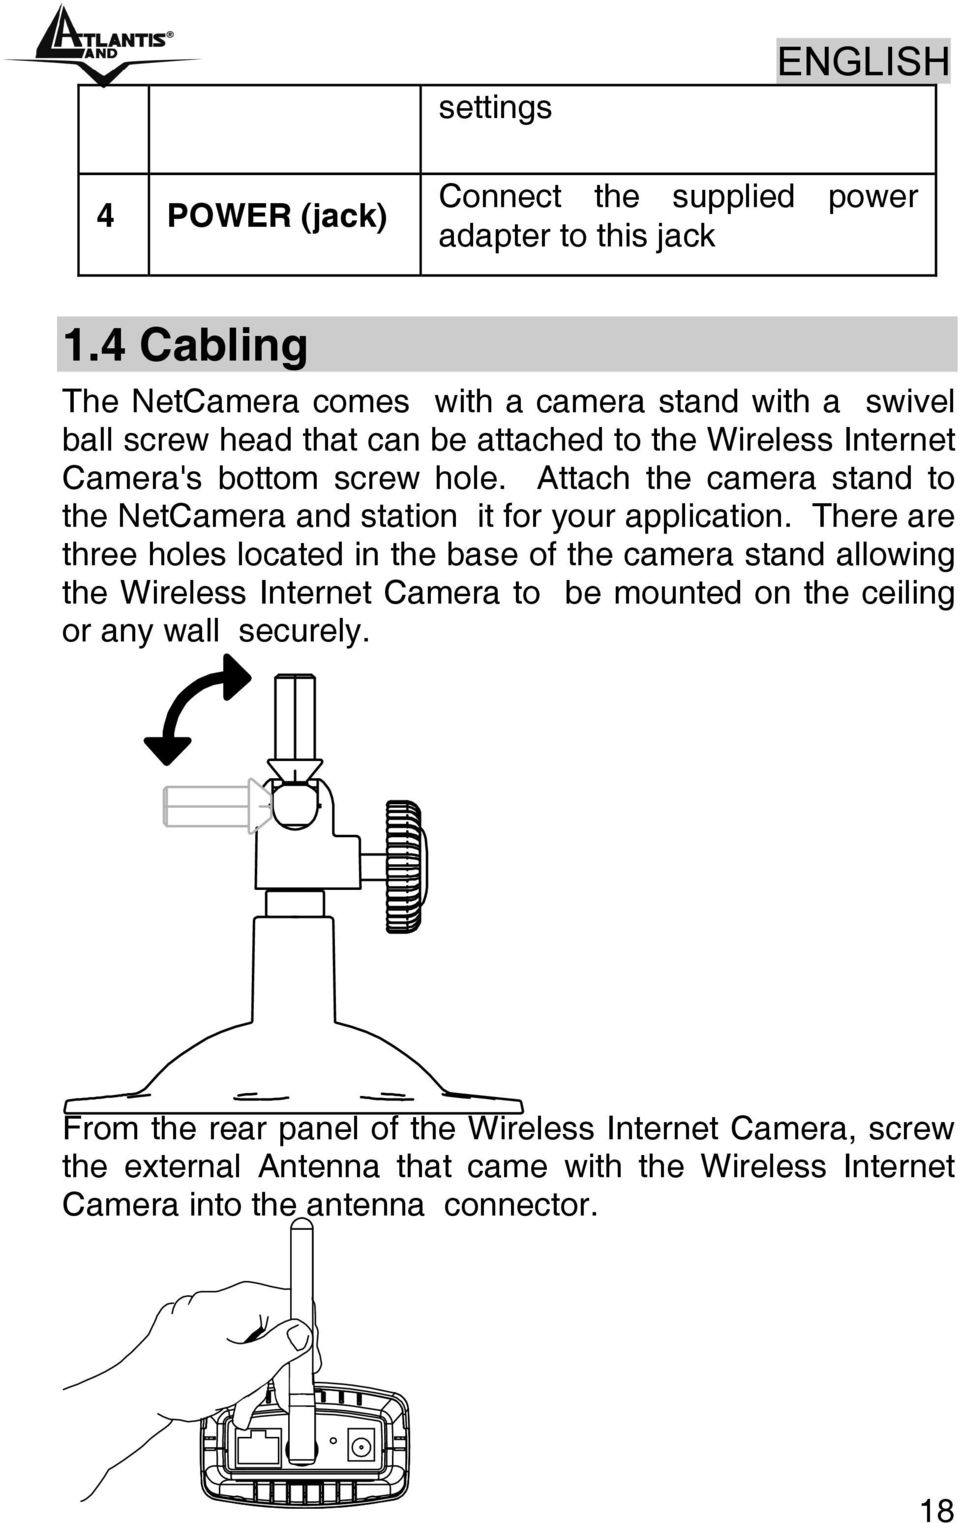 Attach the camera stand to the NetCamera and station it for your application.